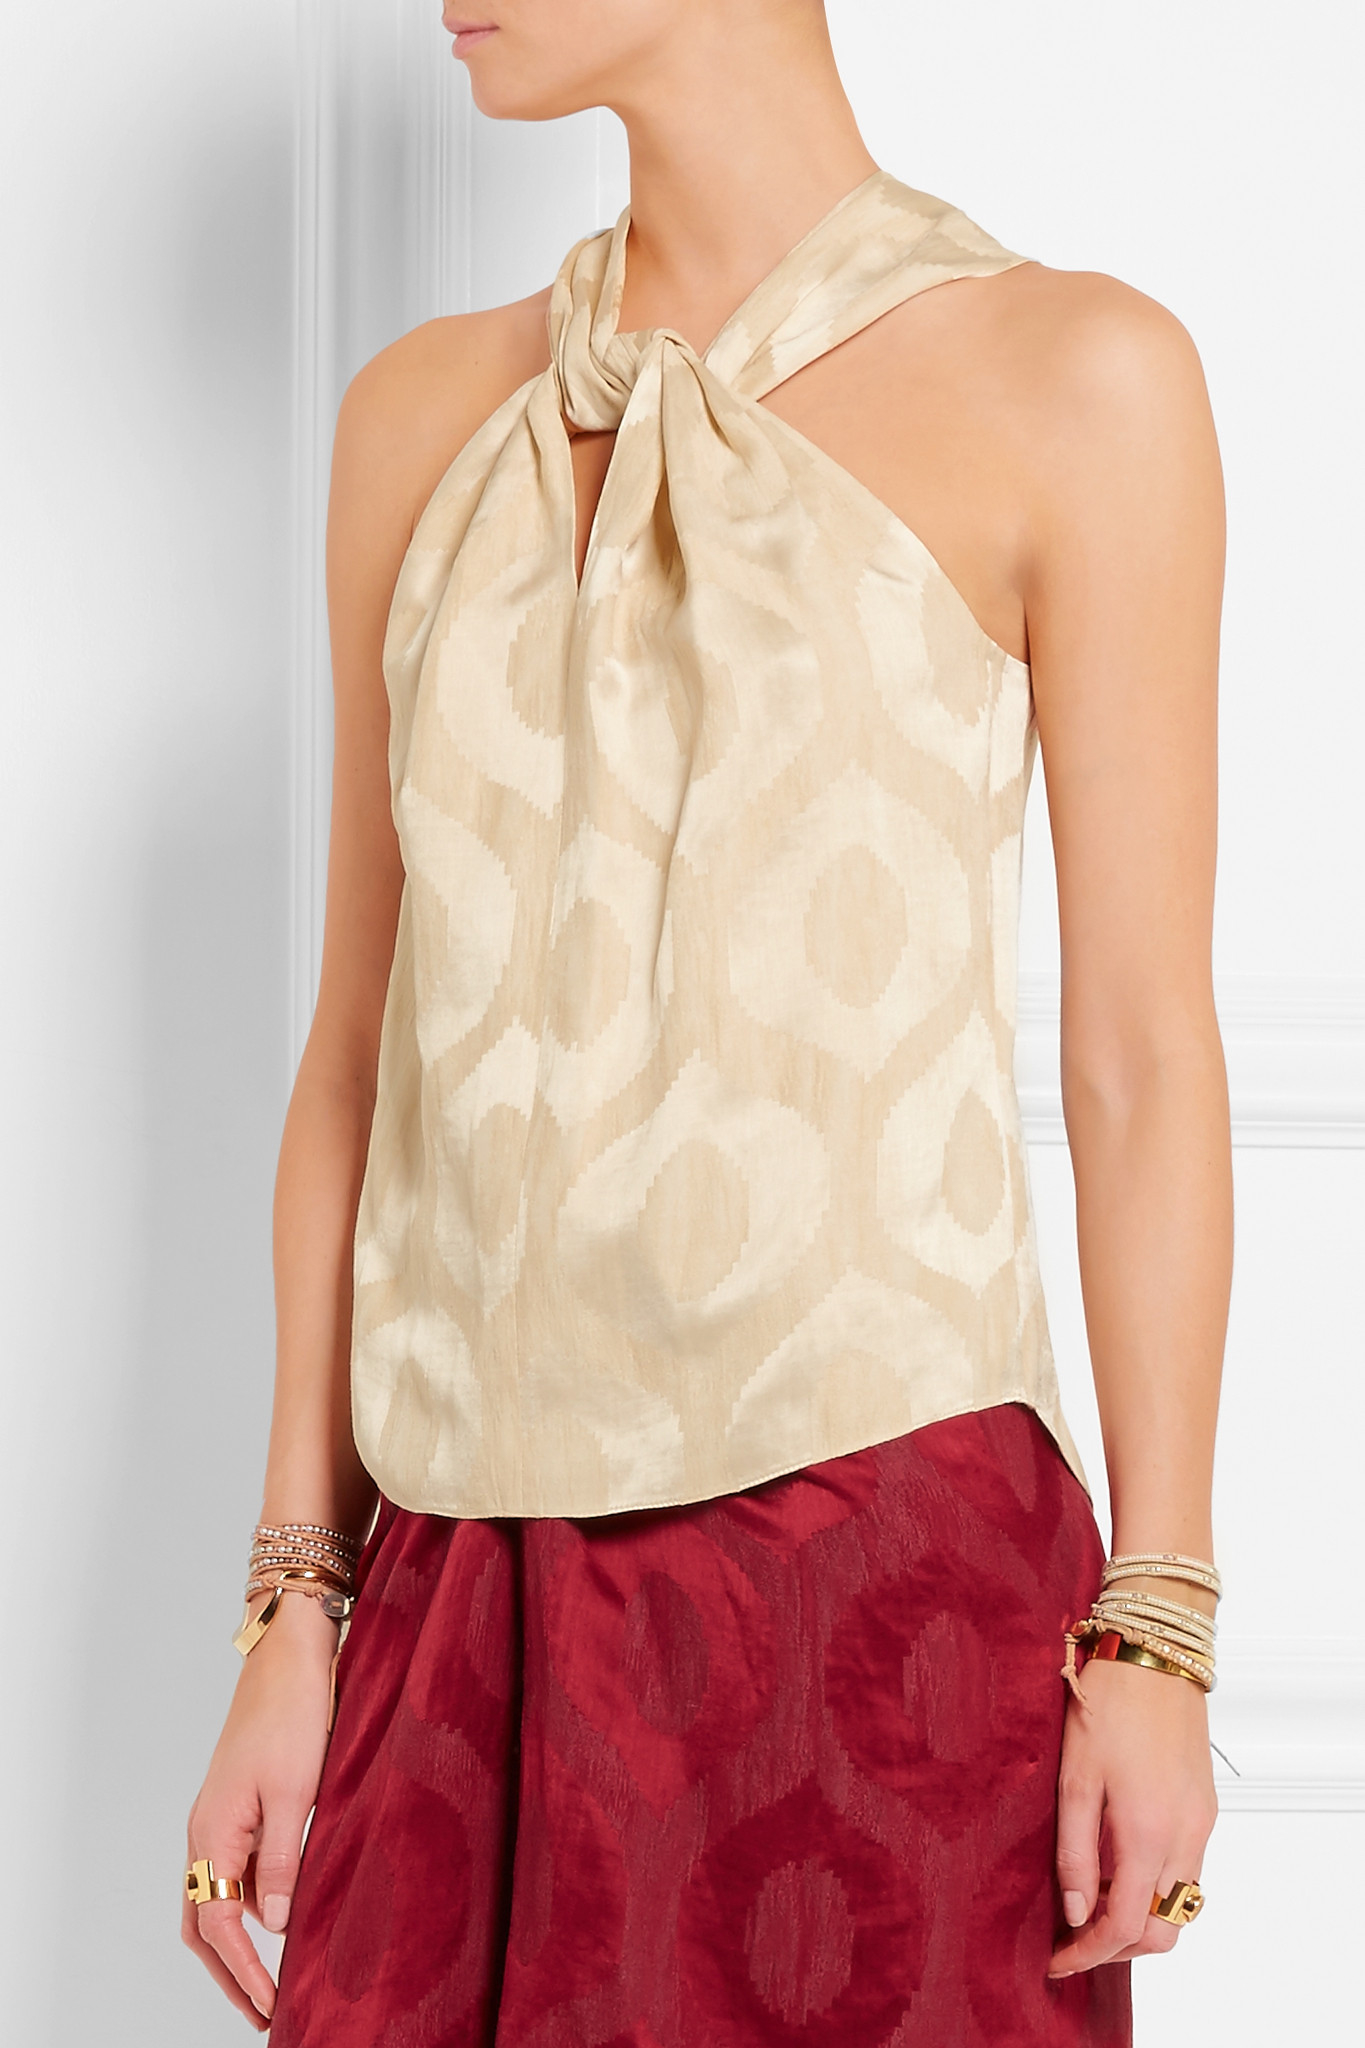 353ad28e8f4d5 Isabel Marant Stephen Twisted Satin-jacquard Top in Natural - Lyst